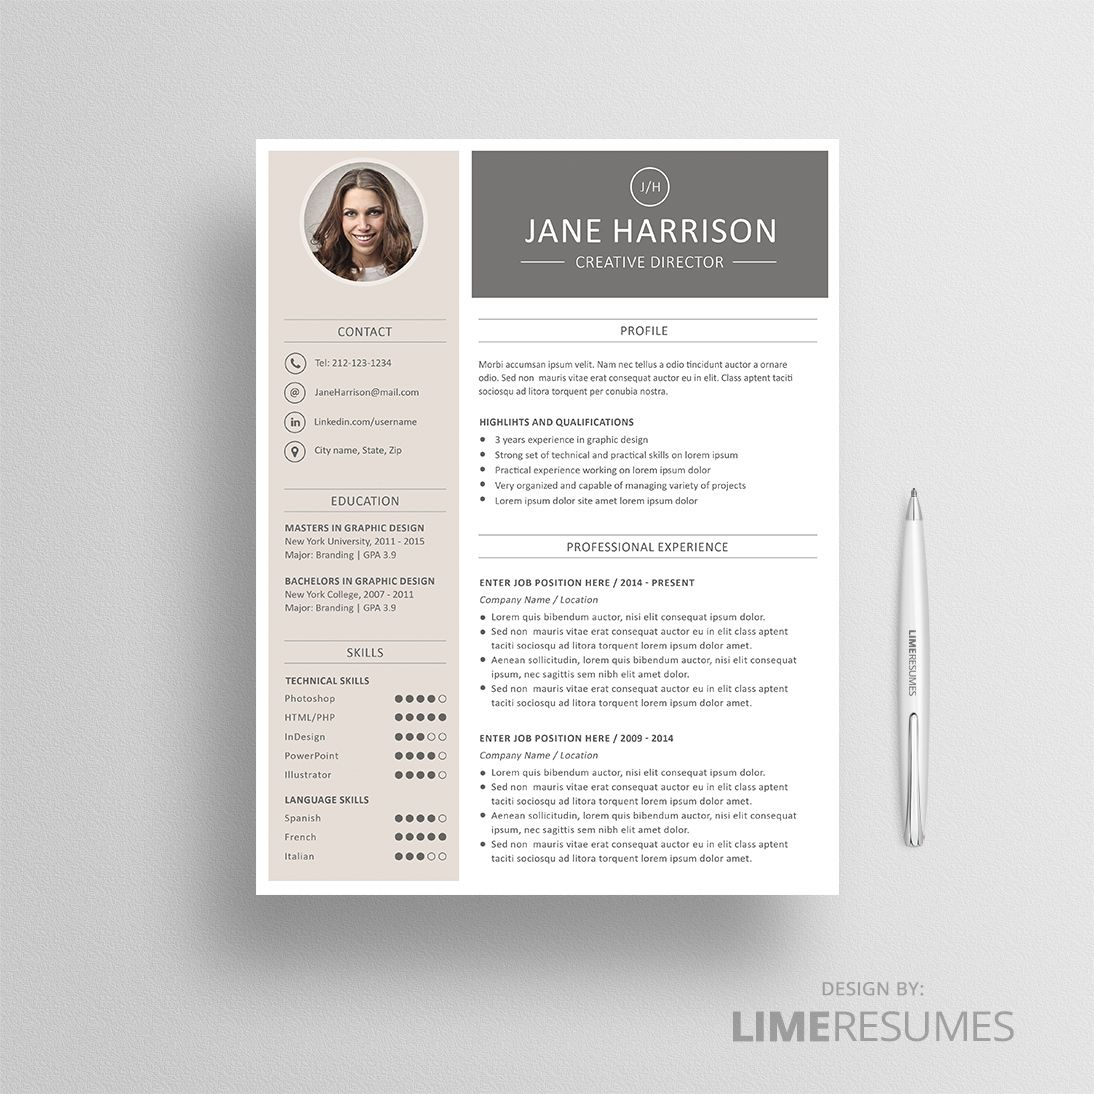 Resume Template 02 Resume cover letter template, Resume